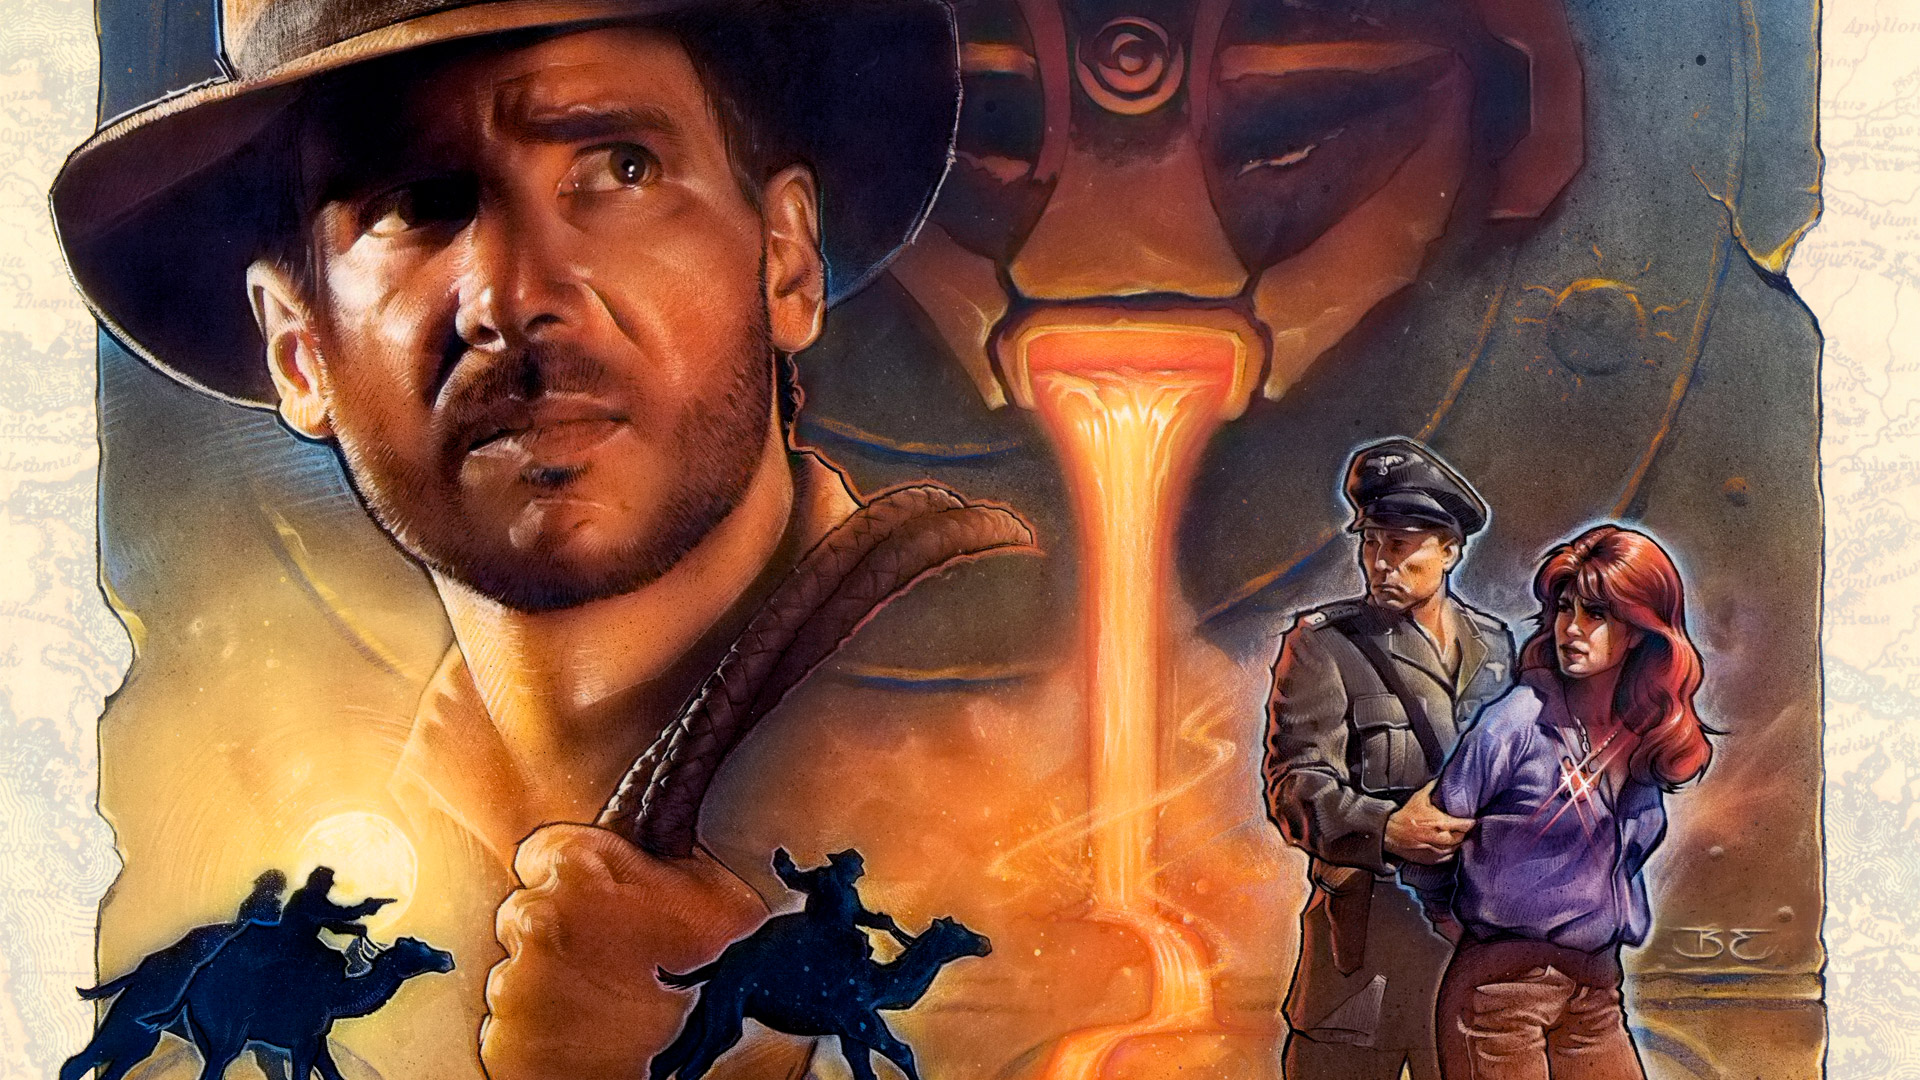 Free Indiana Jones and the Fate of Atlantis Wallpaper in 1920x1080